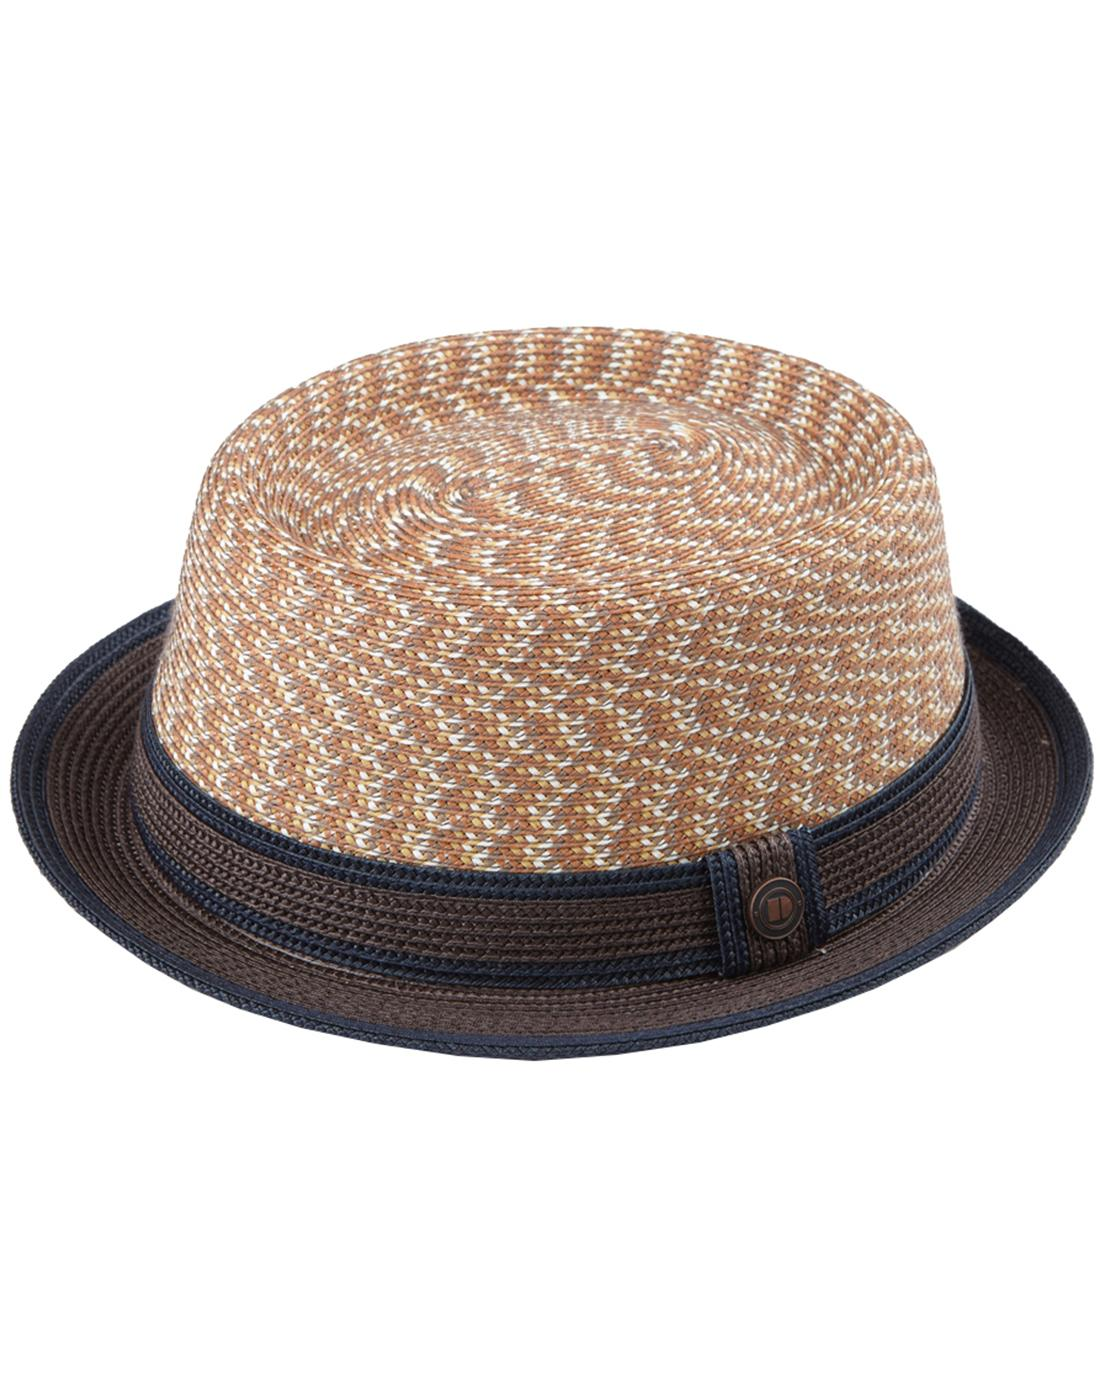 Bill DASMARCA Retro Mod Summer Pork Pie Hat Sunset